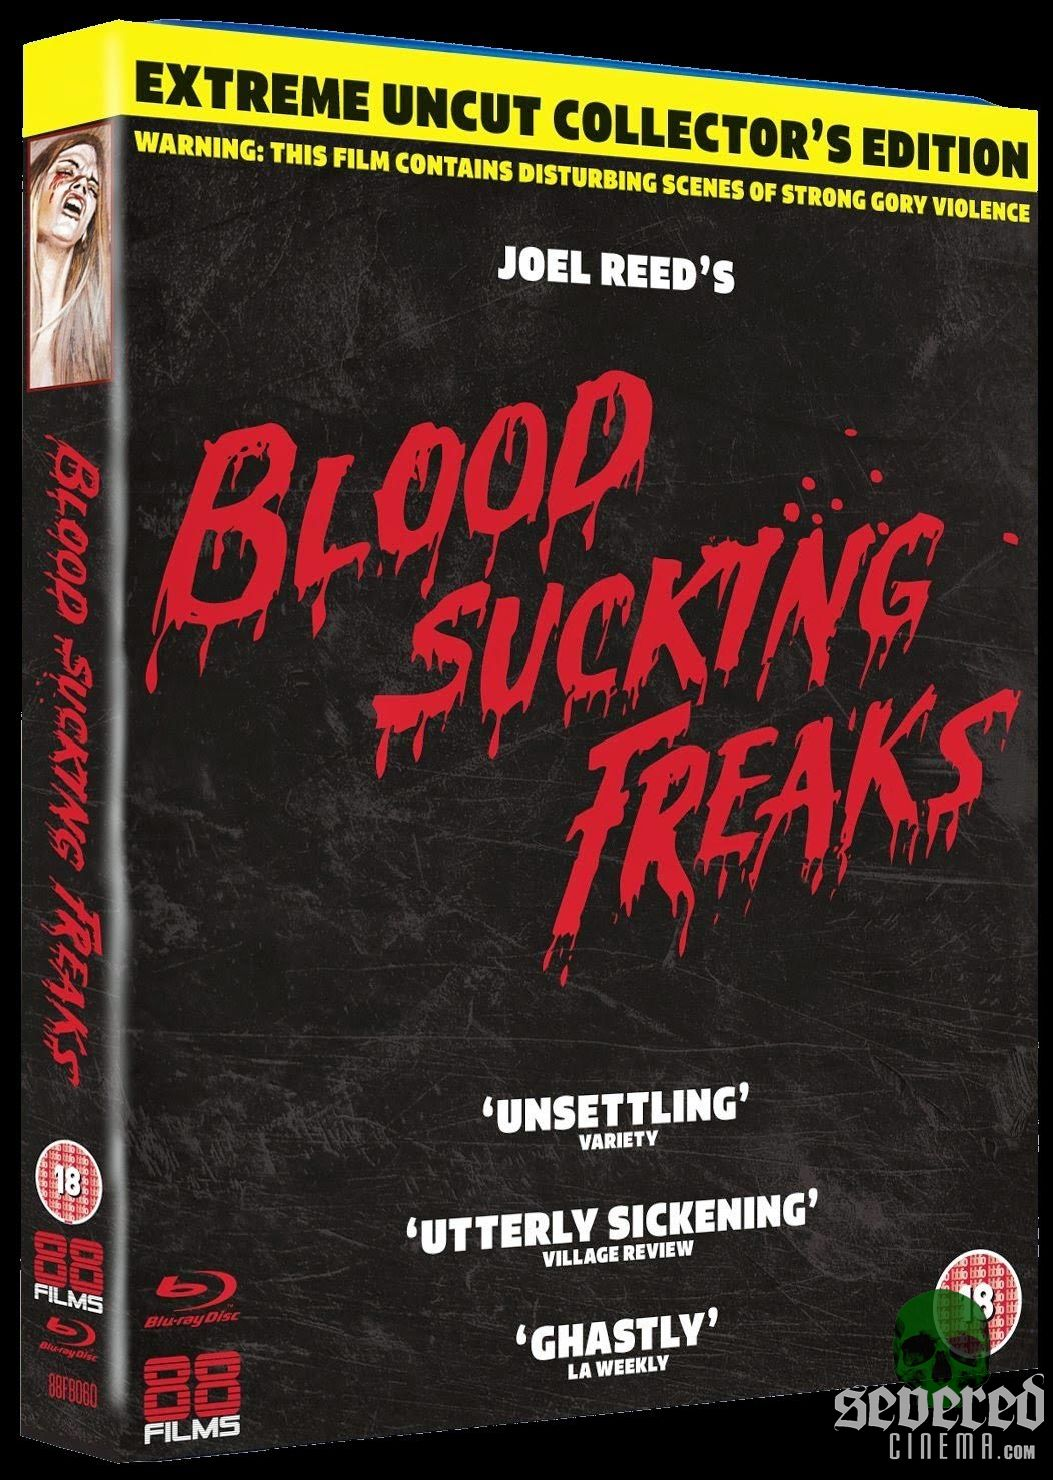 Blood Sucking Freaks Blu-ray from 88 Films on Severed Cinema